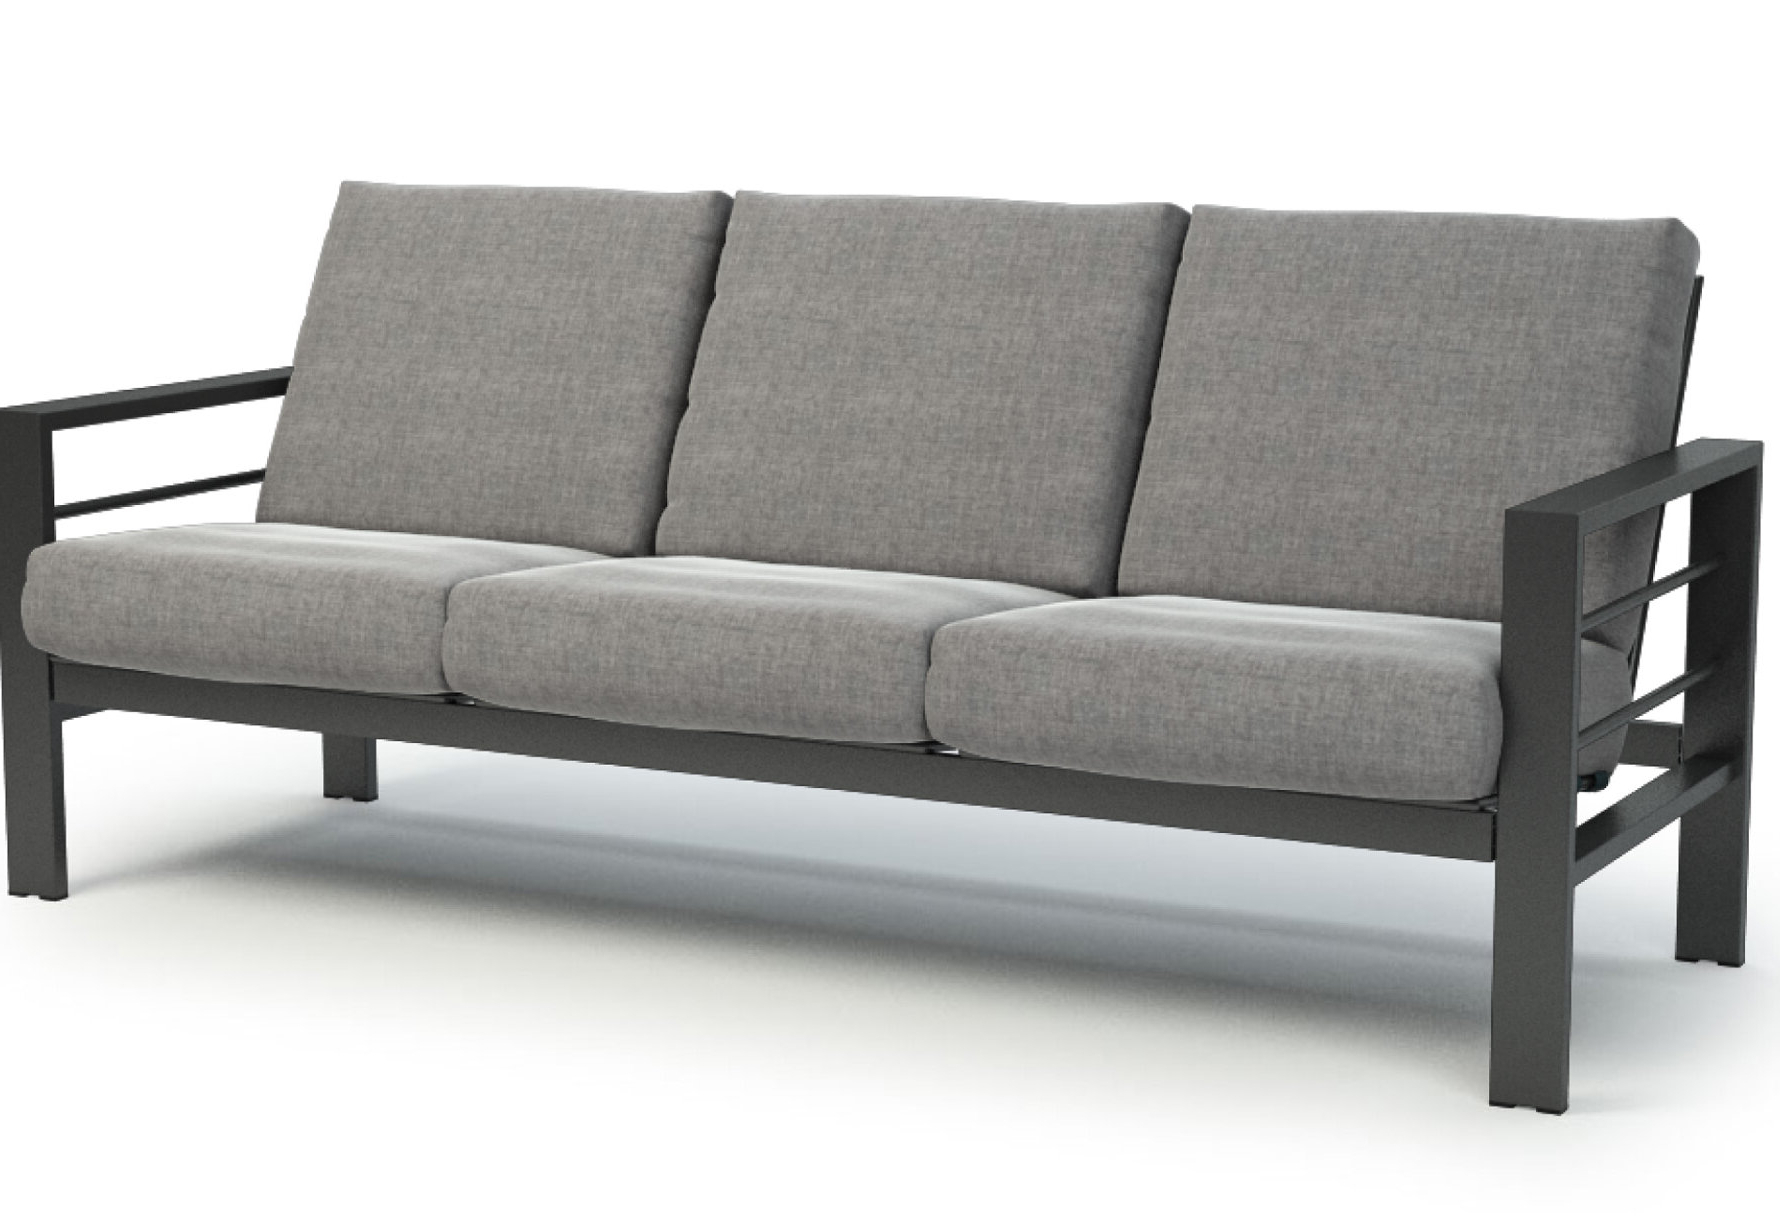 Shufelt Low Back Patio Sofa With Sunbrella Cushions For Well Known Furst Patio Sofas With Cushion (View 18 of 20)